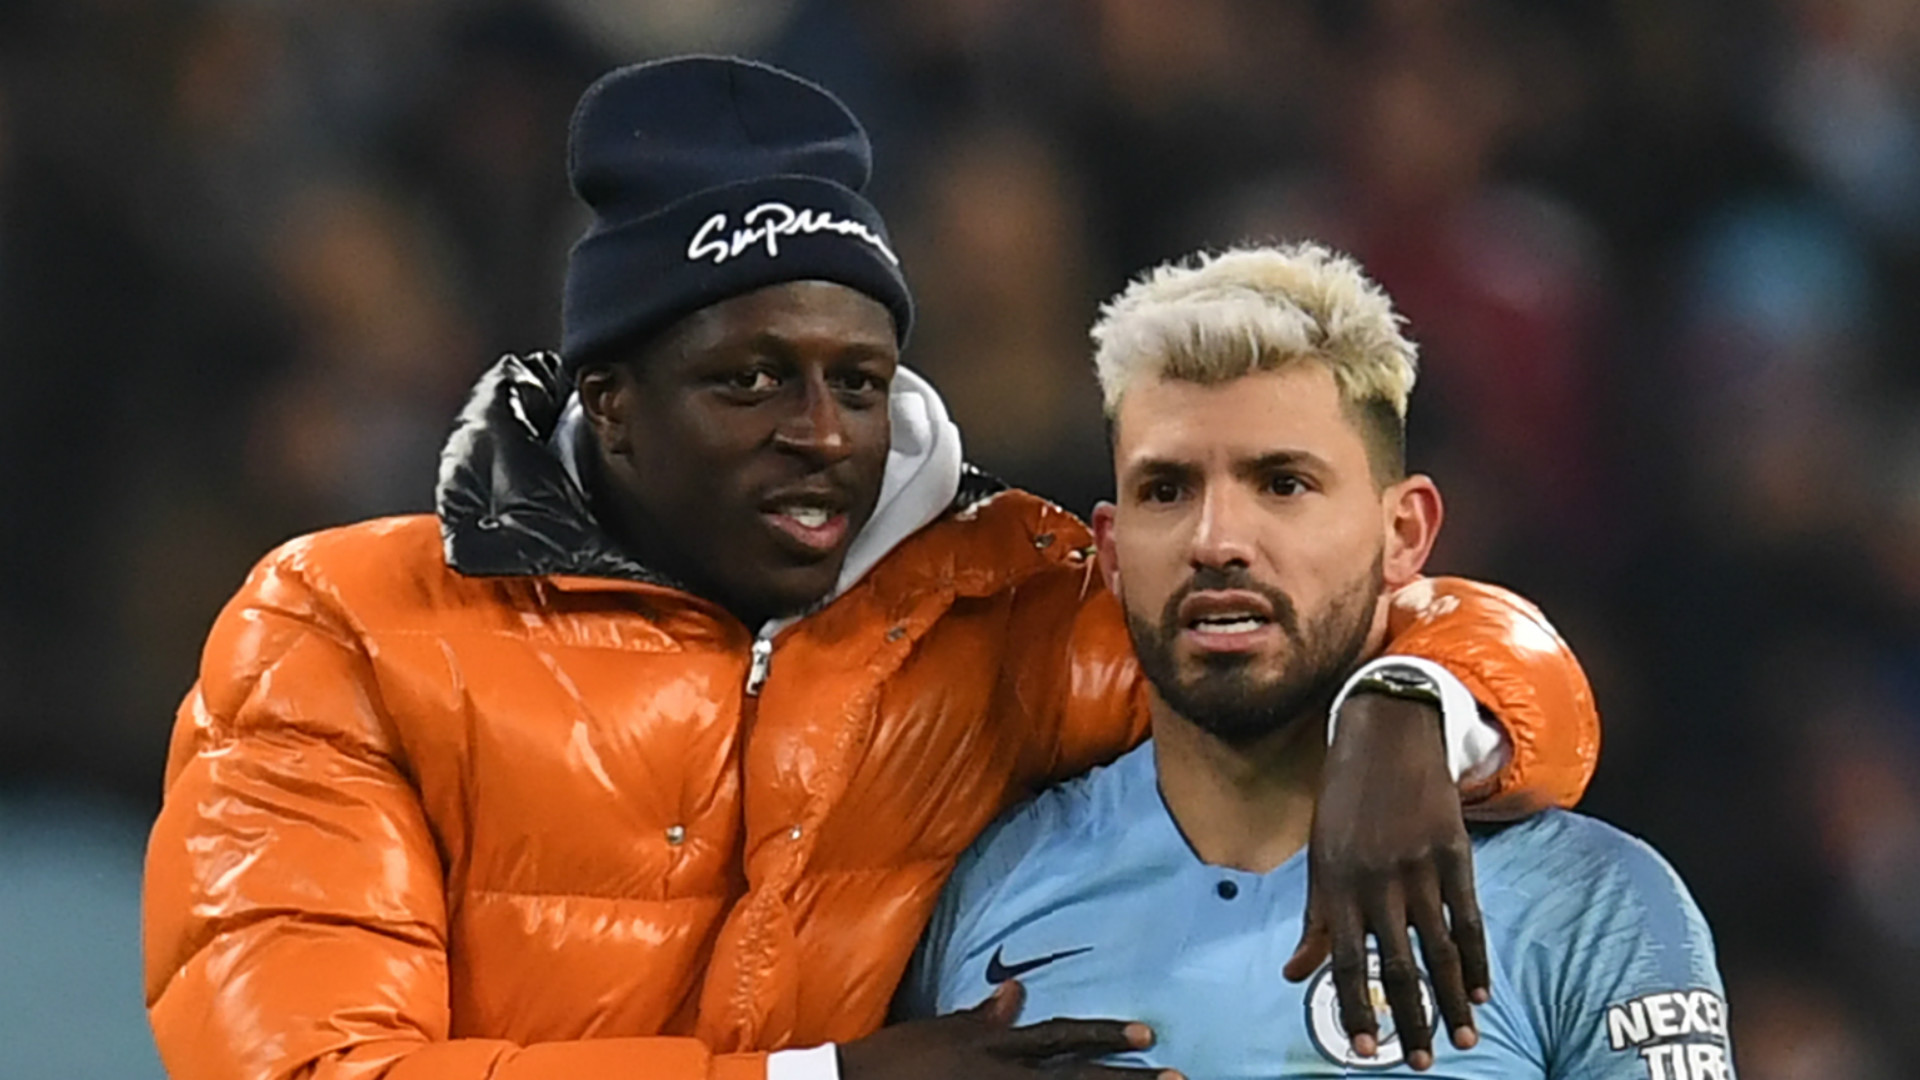 Benjamin Mendy To Pep Guardiola: I Was Not In Hong Kong